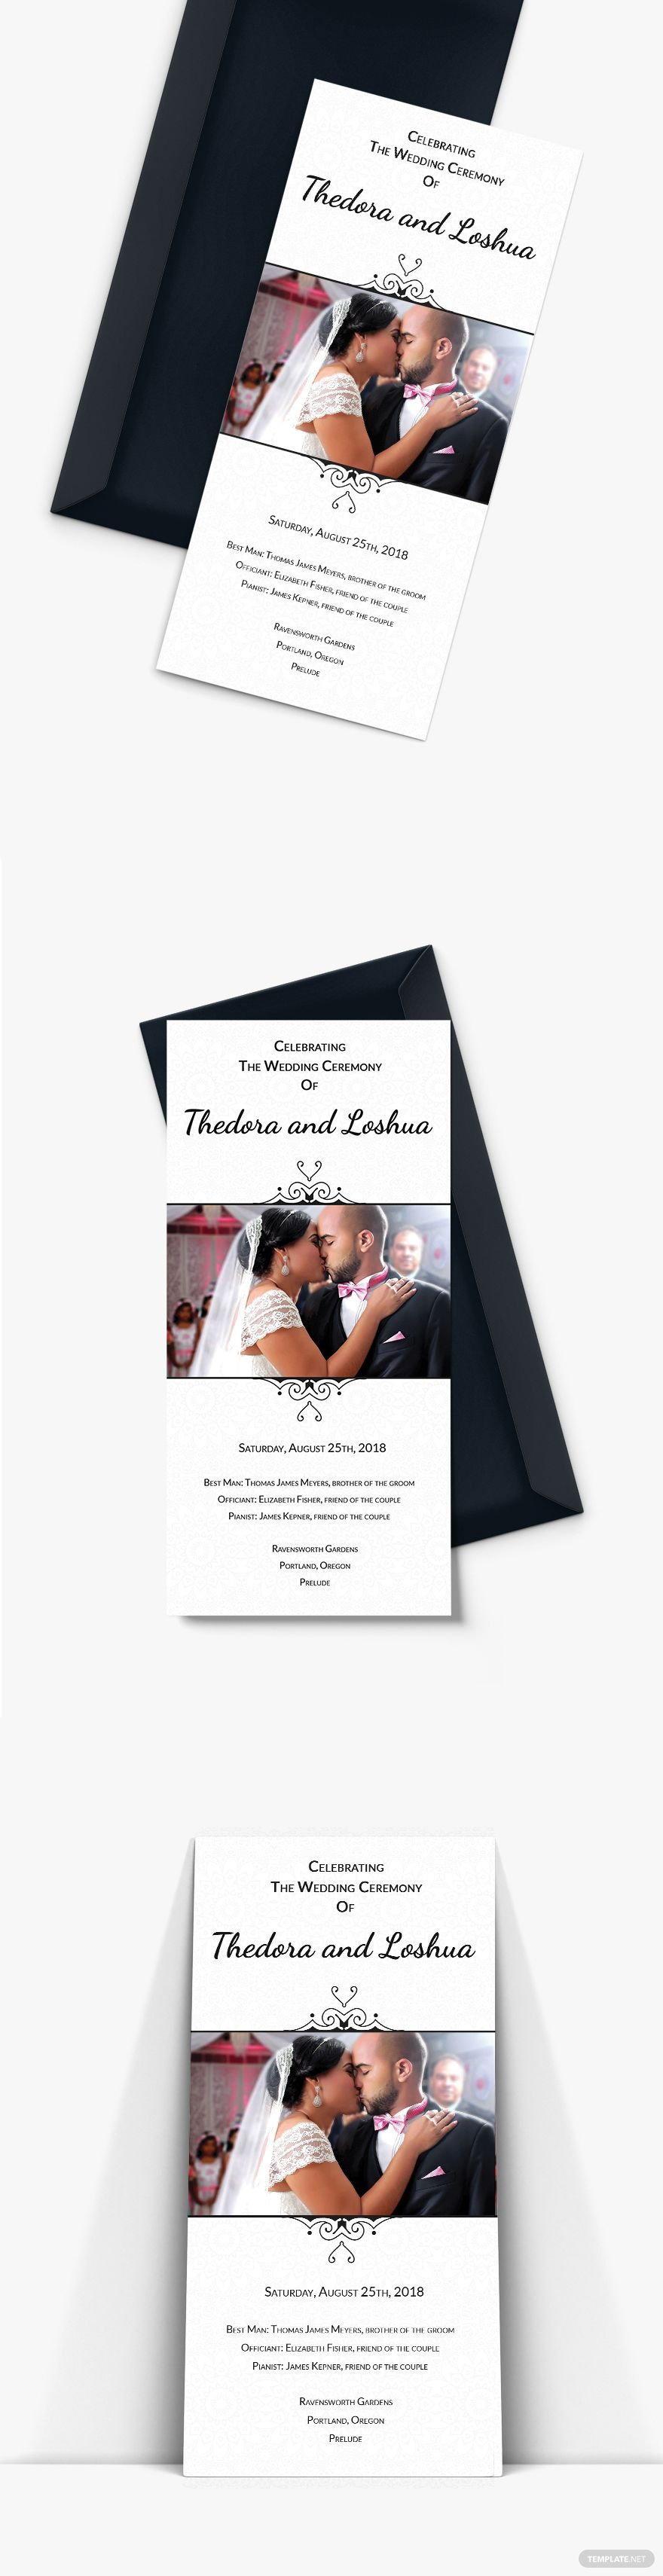 Classic Wedding Invitation Card Template Word Doc Psd Apple Mac Pages Publisher In 2020 Wedding Invitation Cards Wedding Classic Classic Wedding Invitations